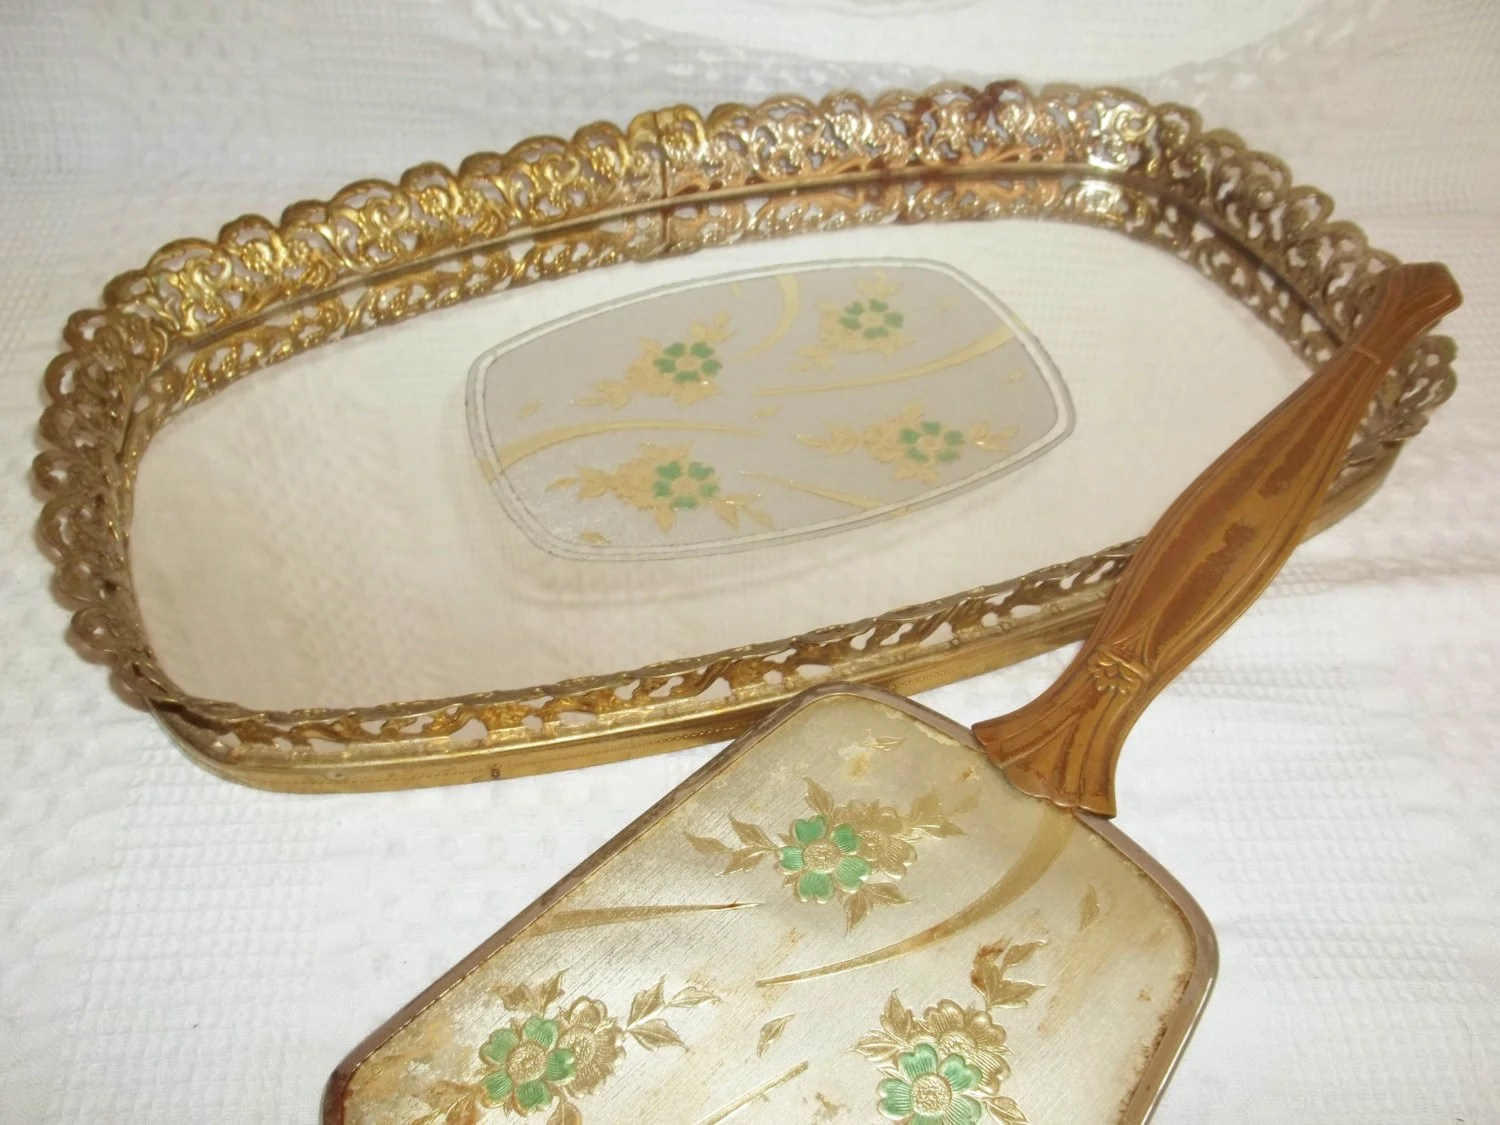 Large Mirrored Tray Vanity Mirror Tray Gold & By GraceYourNest